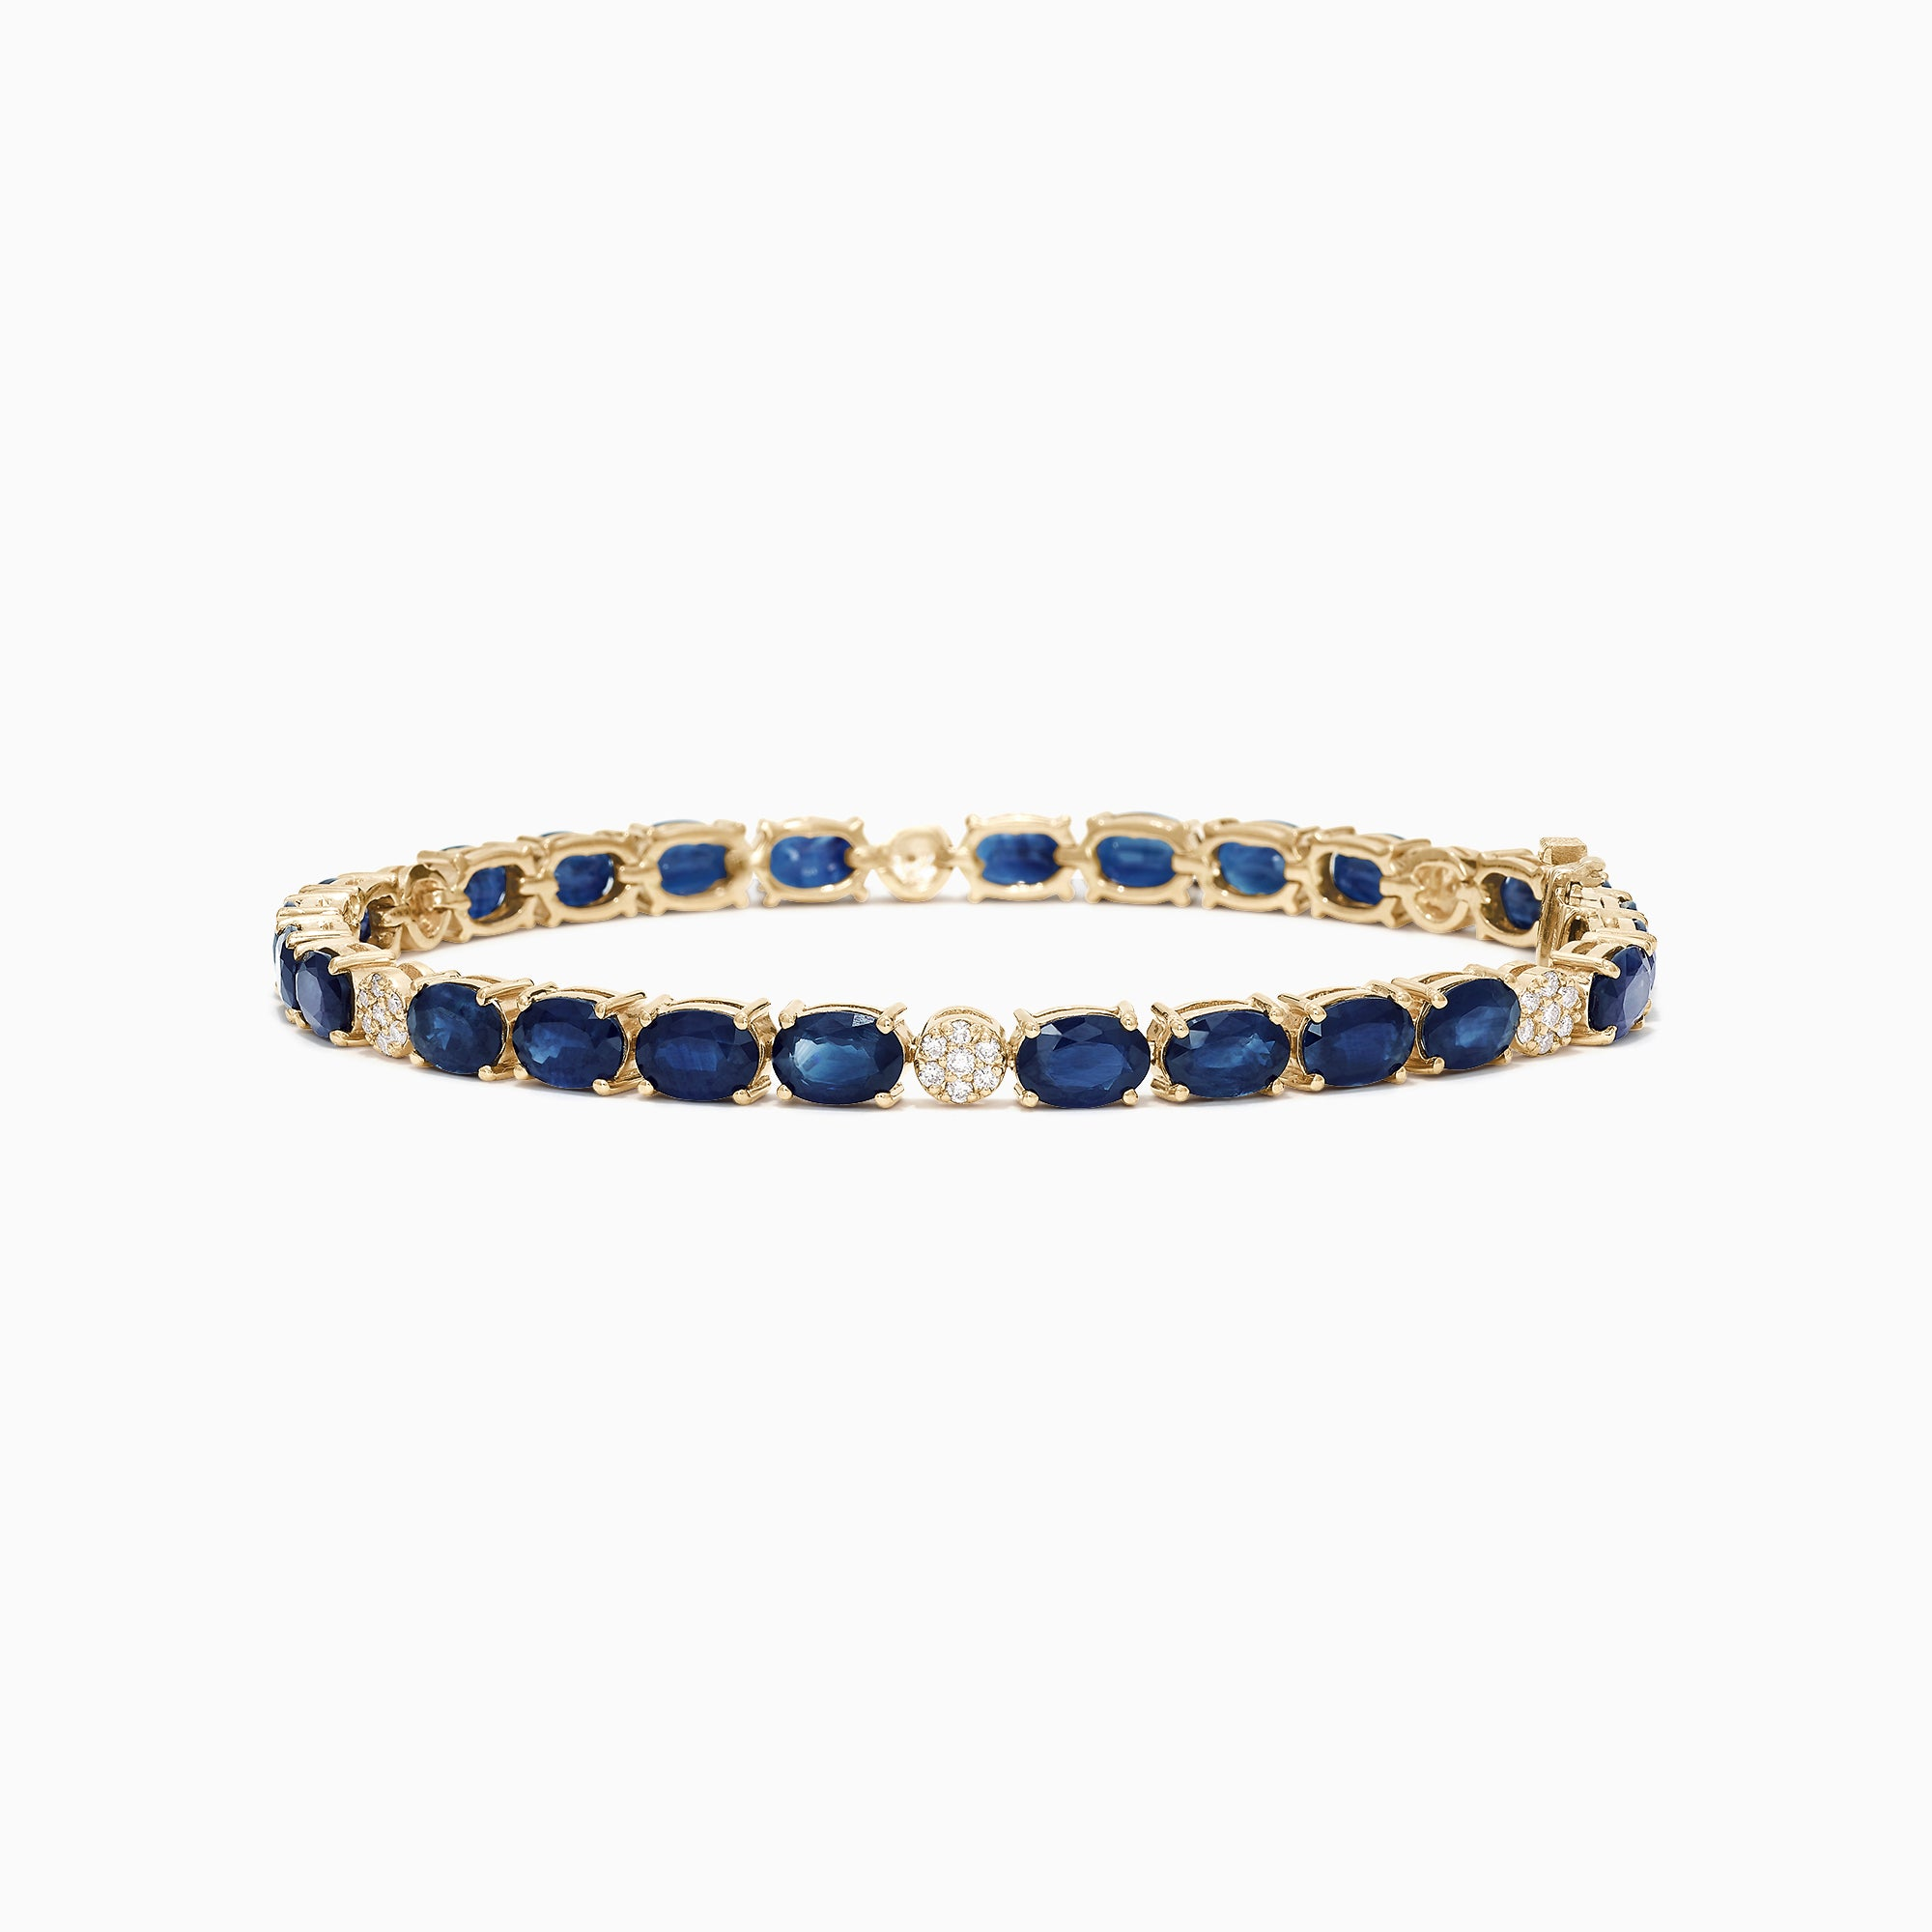 Effy Royale Bleu 14K Yellow Gold Sapphire and Diamond Bracelet, 14.57 TCW